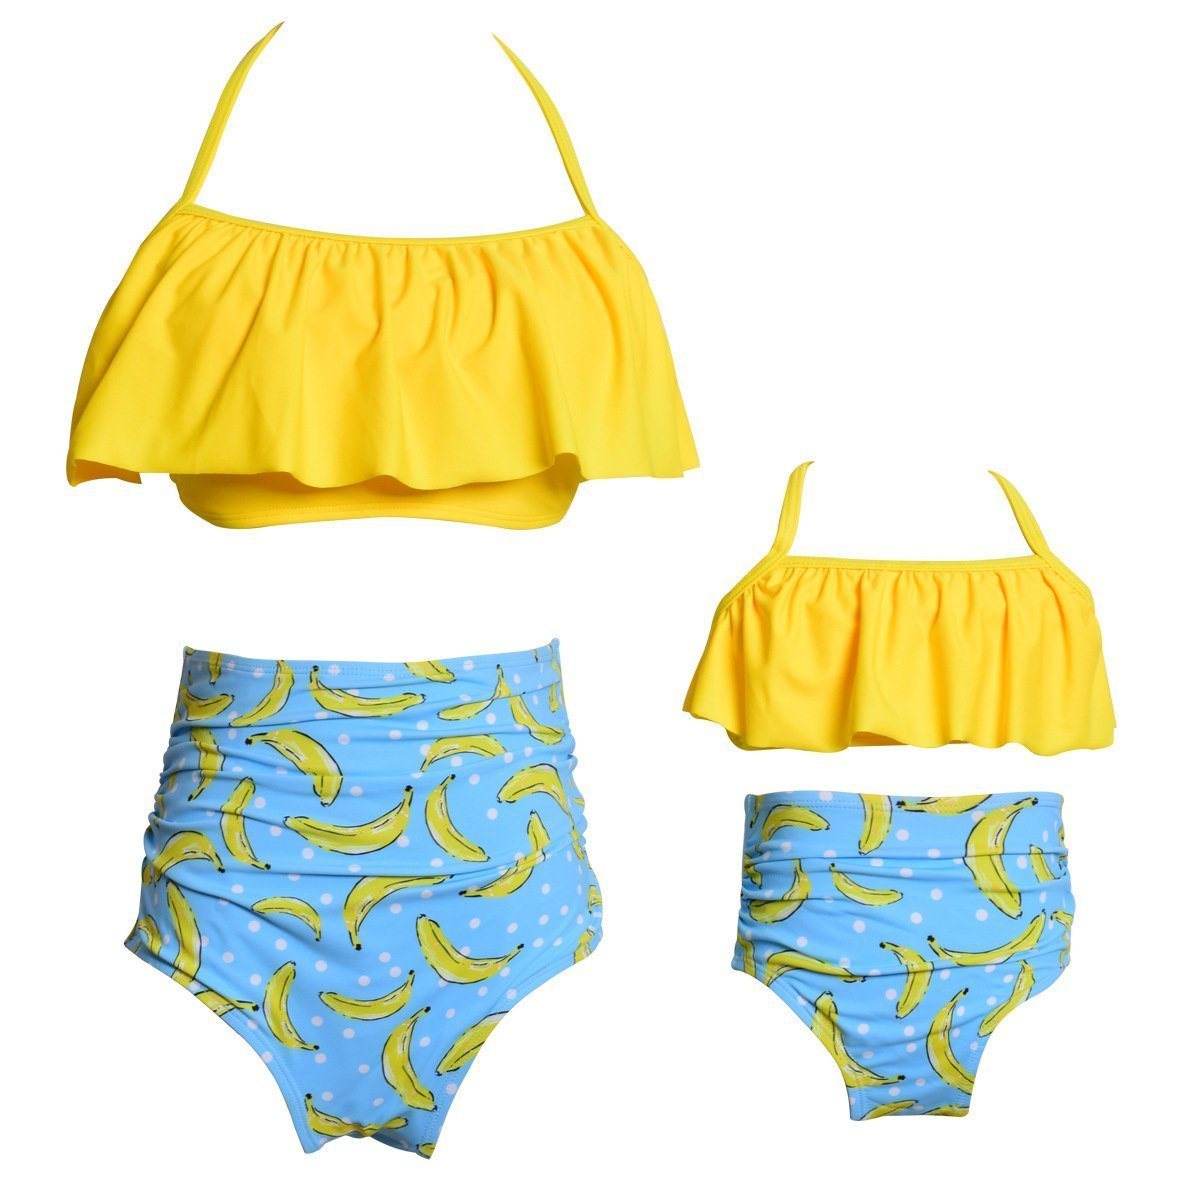 KABETY Girls Swimsuit Two Pieces Bikini Set Ruffle Falbala Swimwear Bathing Suits